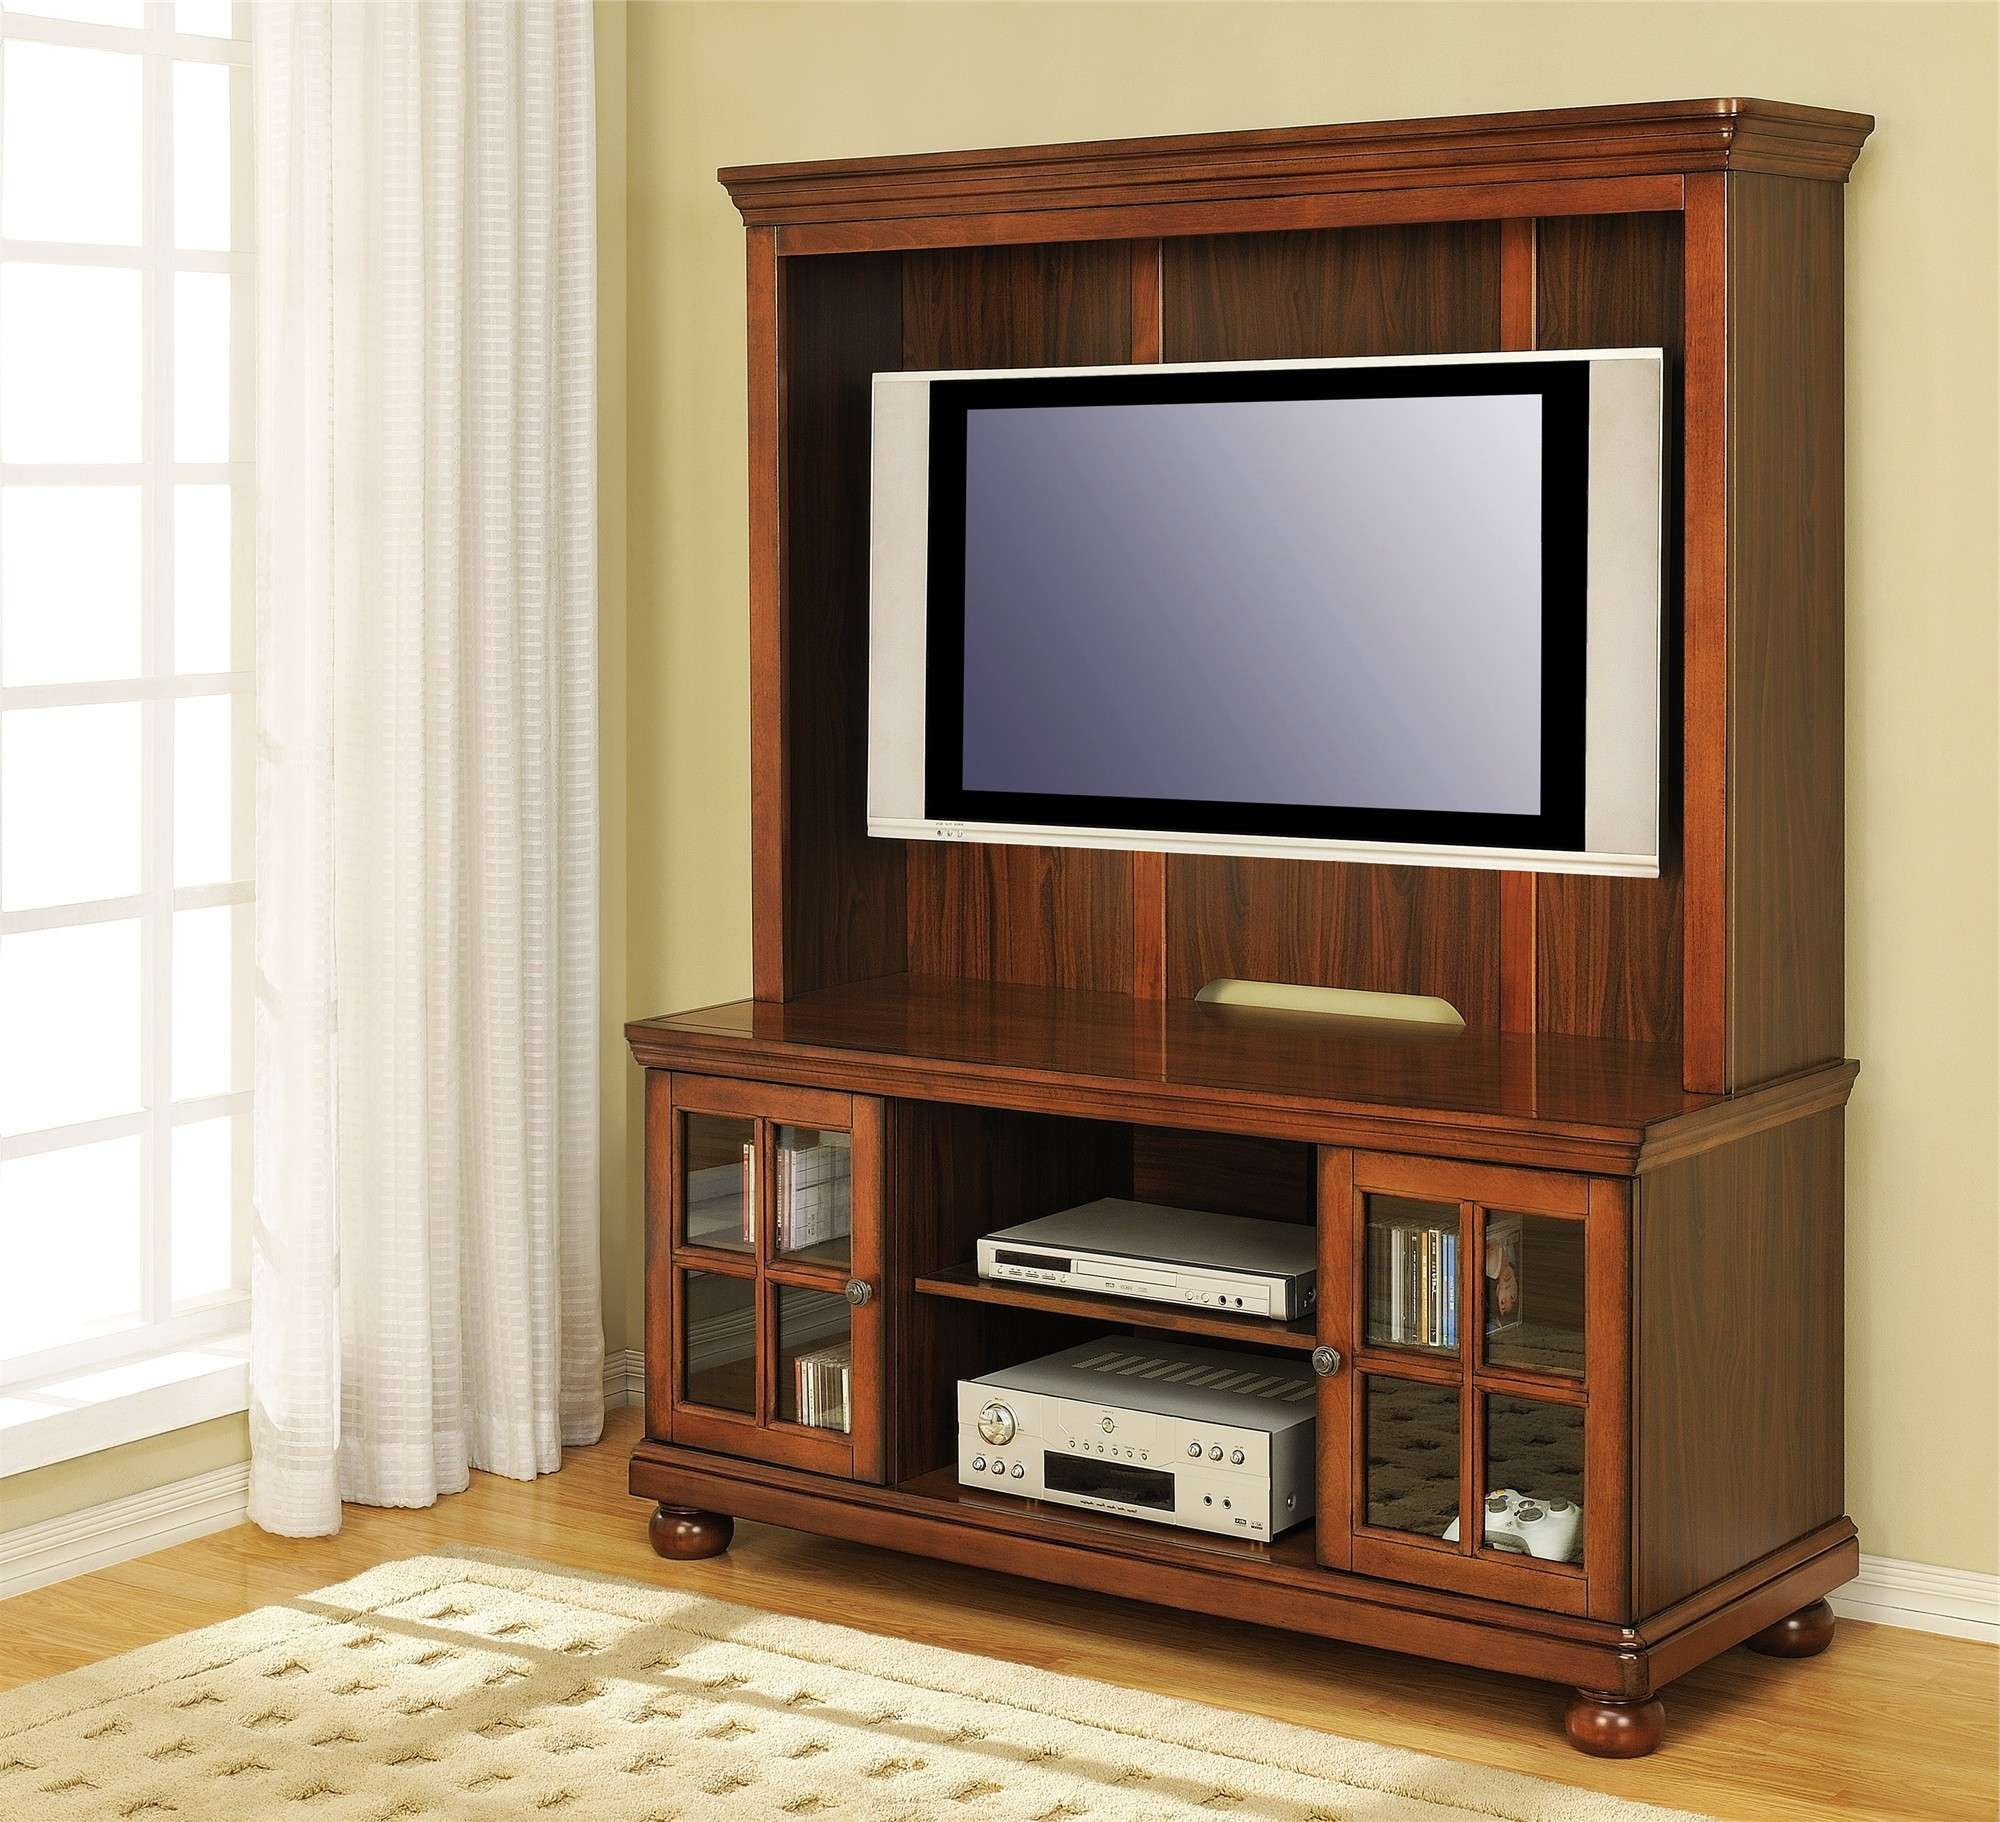 Wood Tv Stands For Flat Screens Regarding Unique Tv Stands For Flat Screens (View 15 of 15)